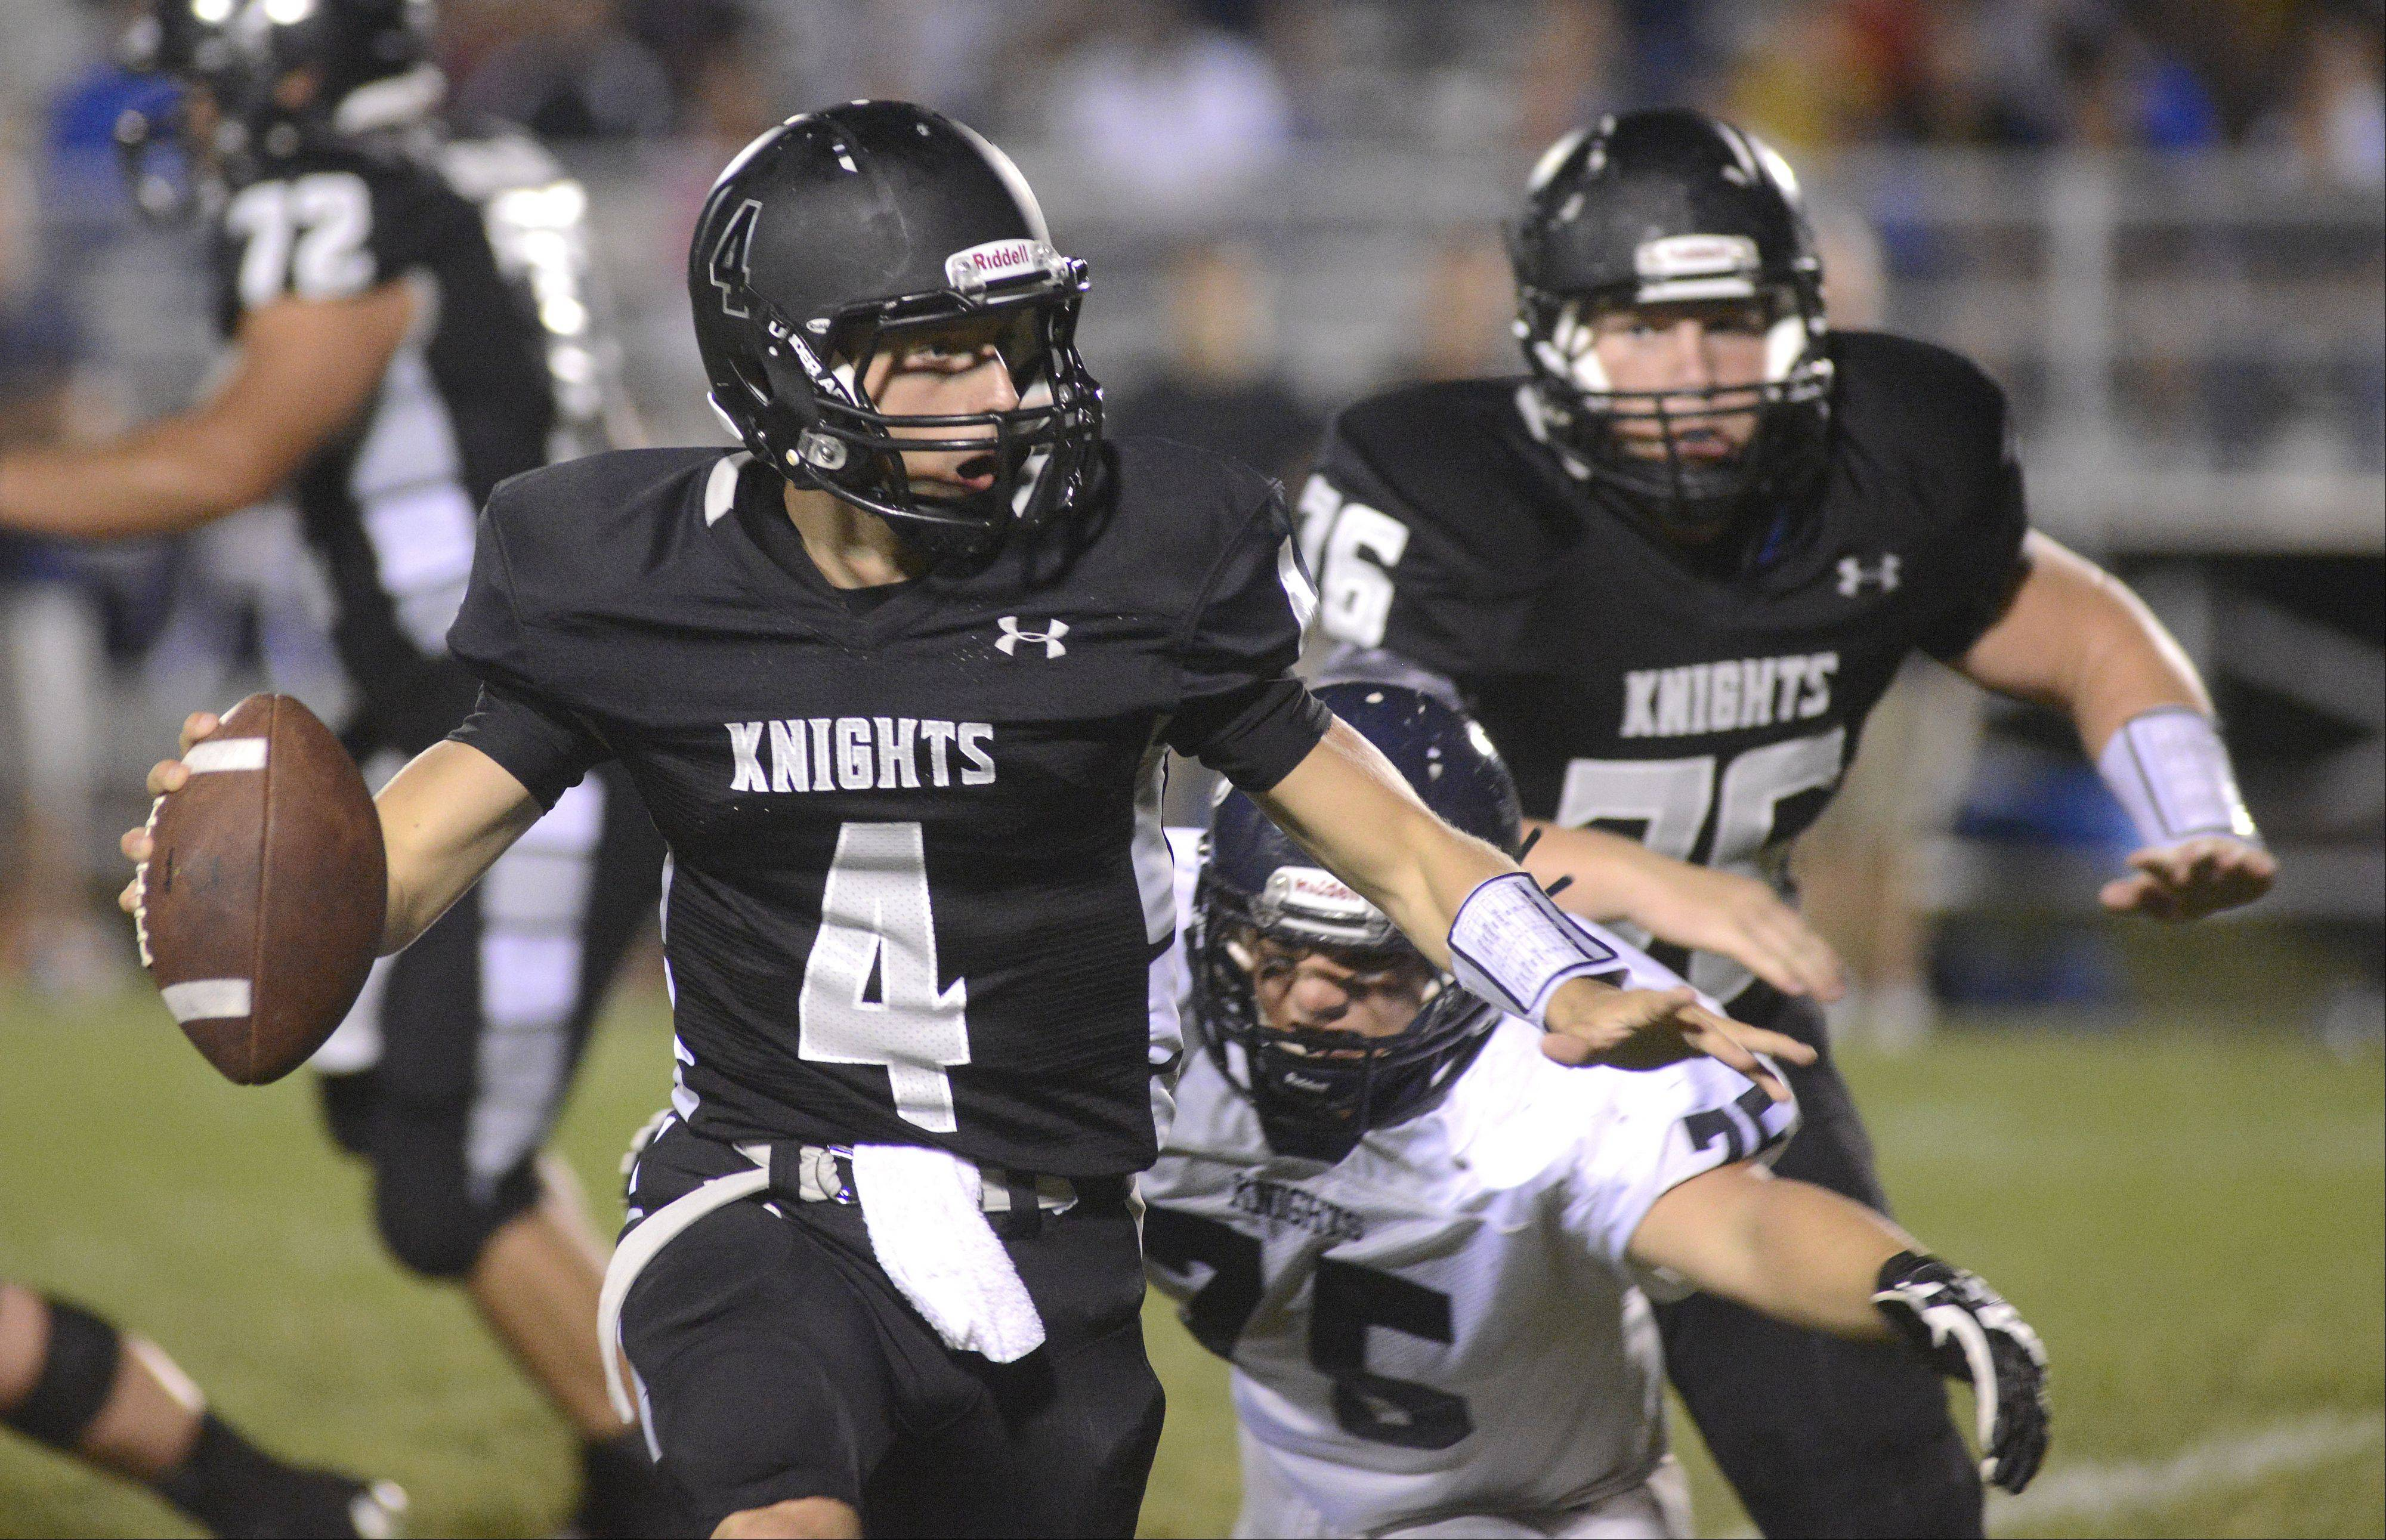 Along with Aurora Christian and Marmion, Kaneland — with quarterback Drew David fresh off a career-high 6 touchdowns in last Friday's win — takes a 4-0 record into its Week 5 game.